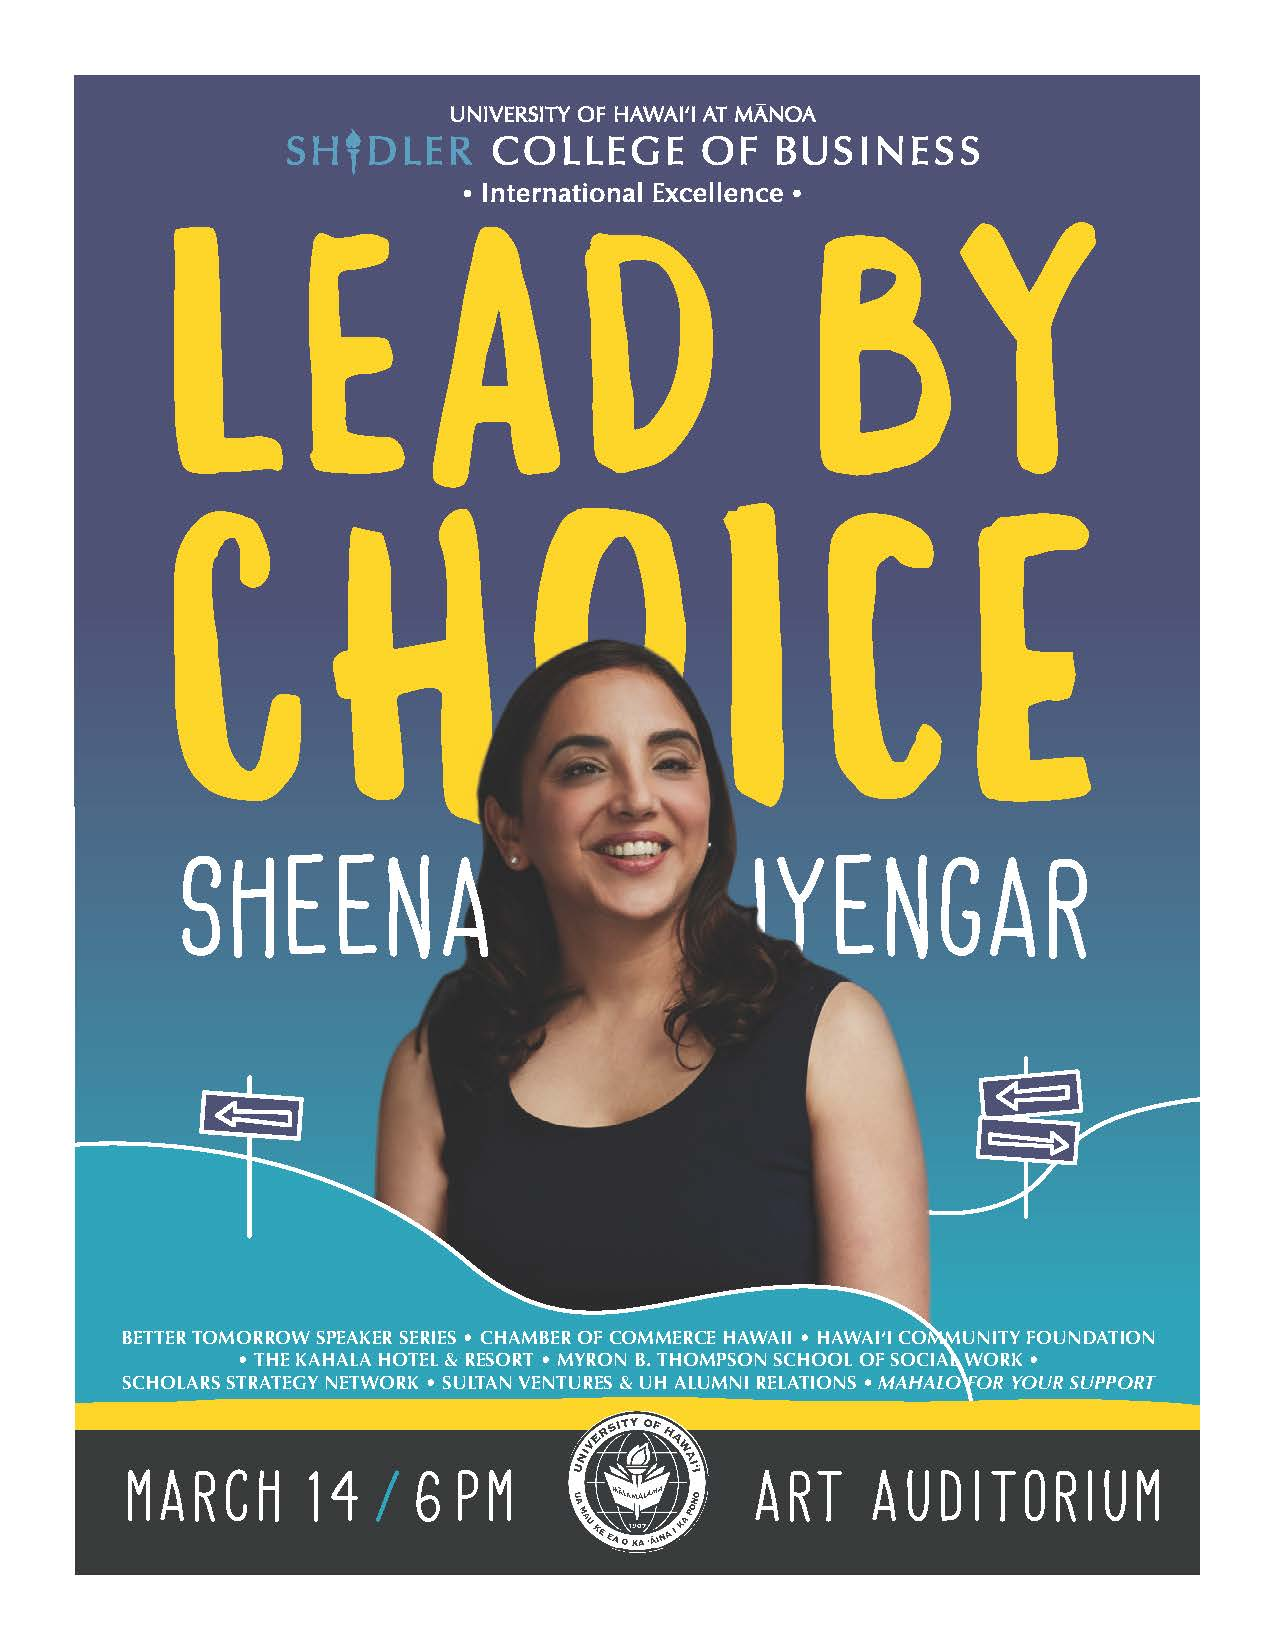 Lead by Choice, Sheena Iyengar Poster - March 14th 2019, 6pm at Art Auditorium at the university of Hawaii Manoa Campus